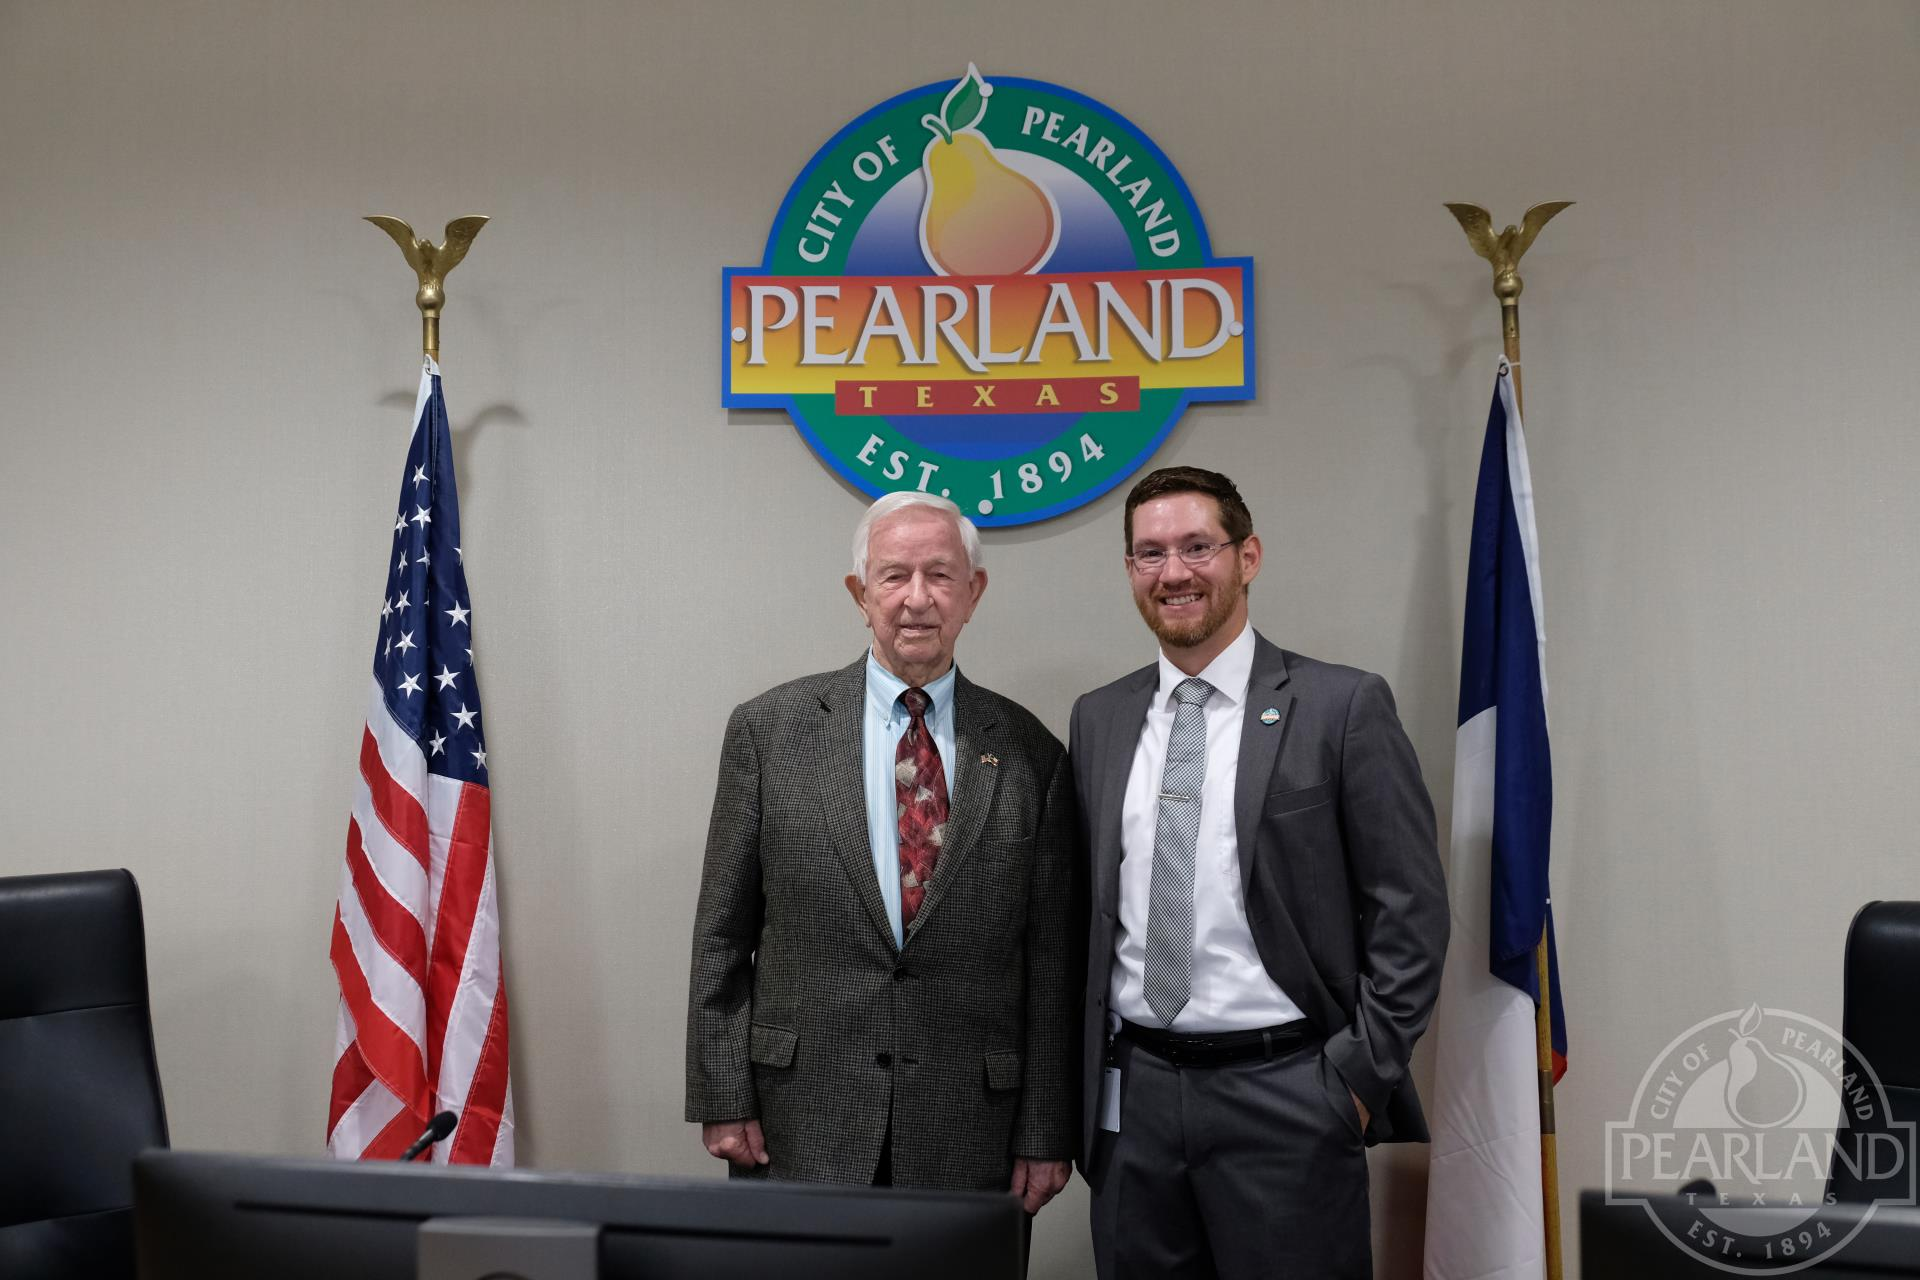 City Council brings on Adrian Hernandez and Mayor declares July National Parks & Recreation Month